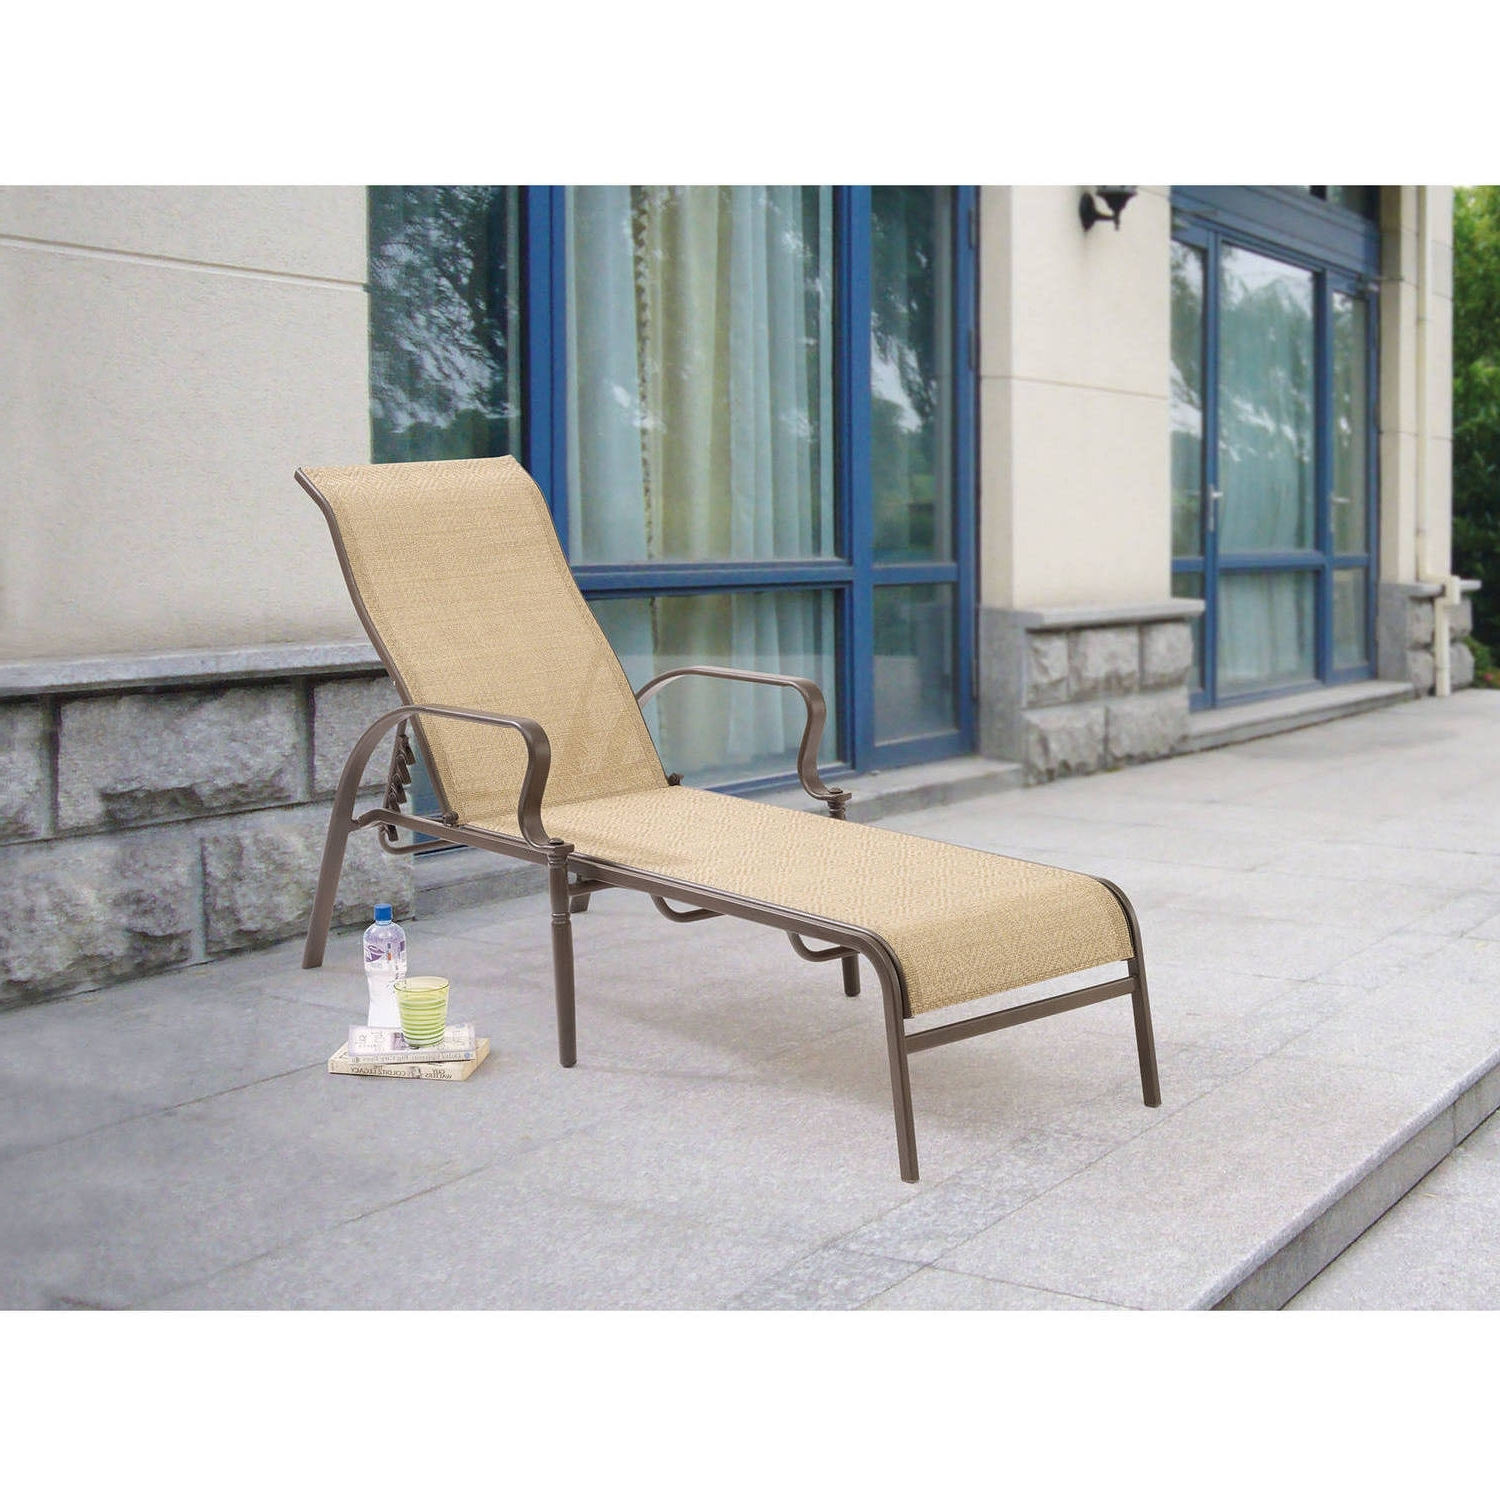 Trendy Mainstays Wesley Creek Sling Outdoor Chaise Lounge – Walmart With Walmart Chaise Lounges (View 8 of 15)